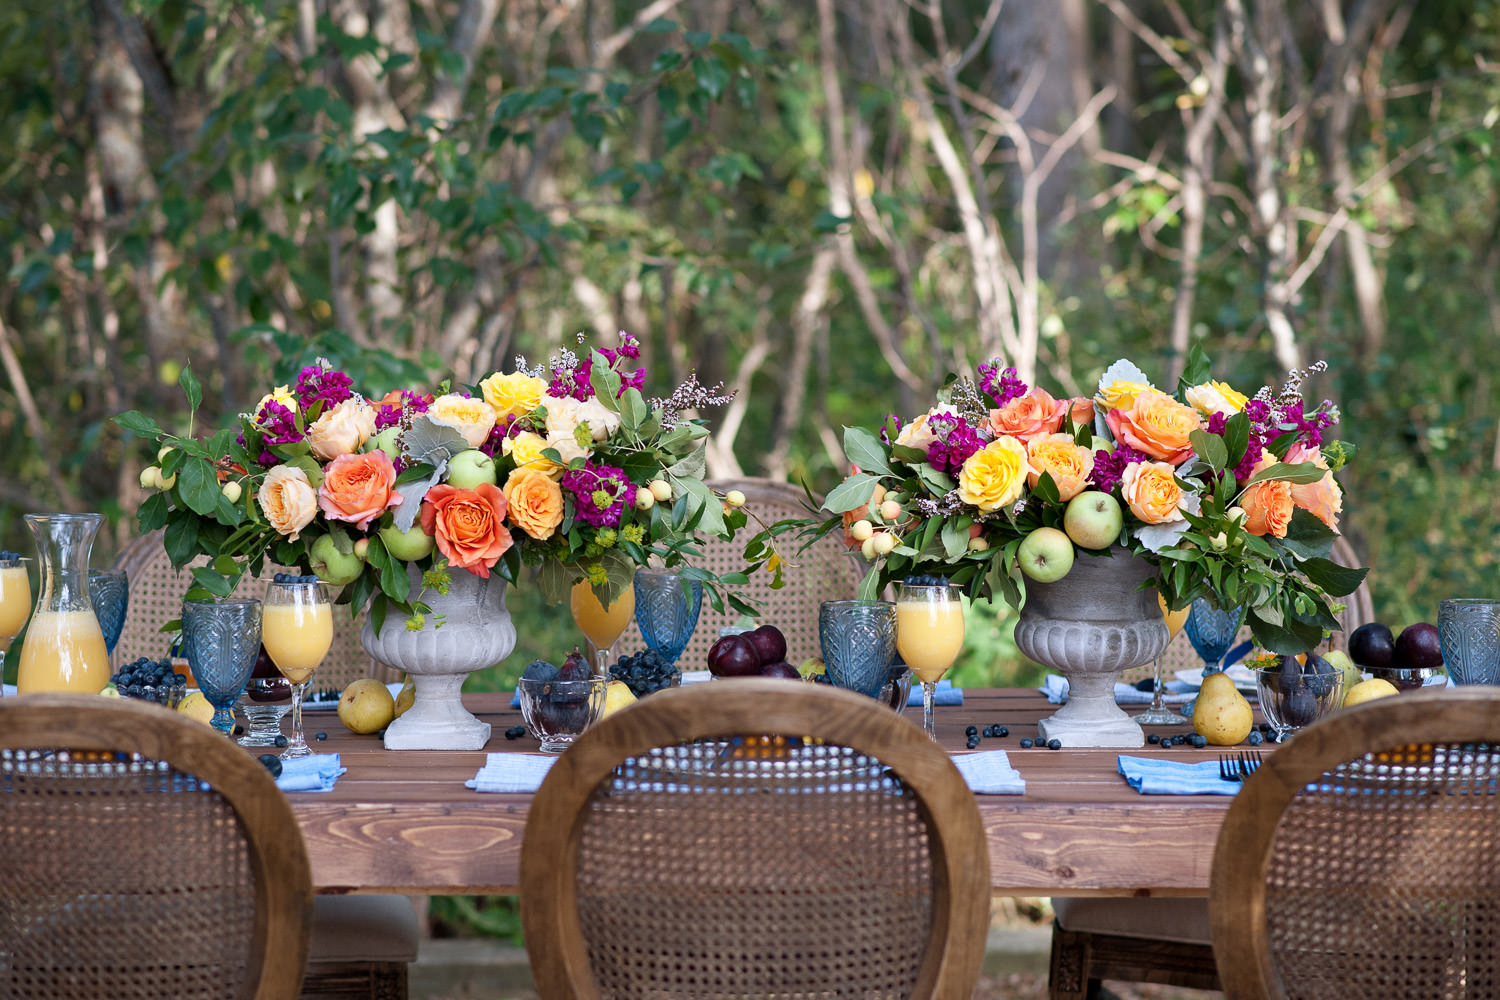 Fruit & floral centrepieces for a brunch wedding captured by Tara Whittaker Photography